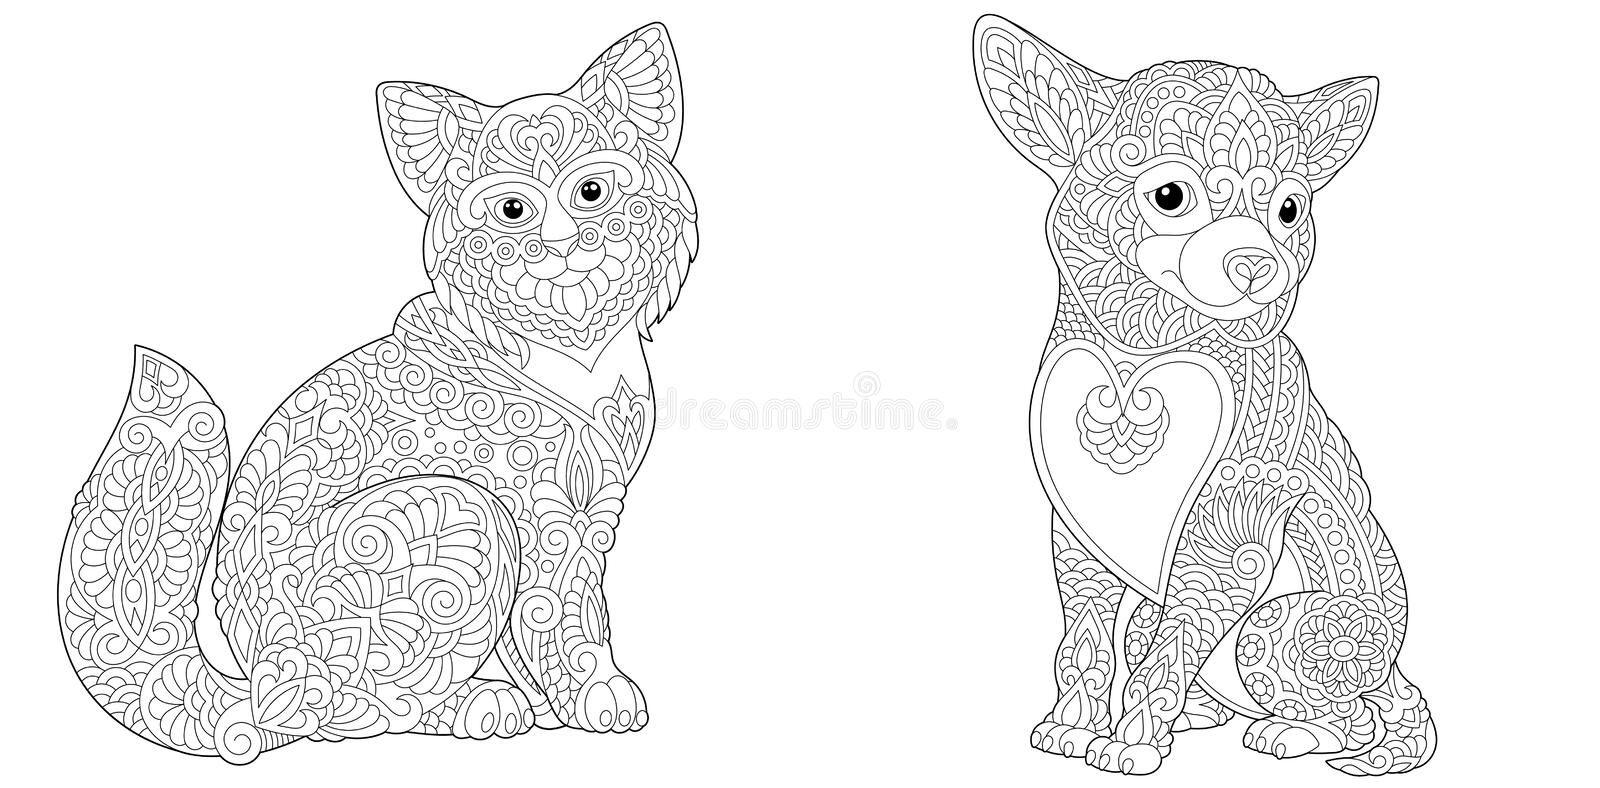 Fun Zen Owl Advanced Coloring Page for Adults - Free Coloring Page ... | 394x800